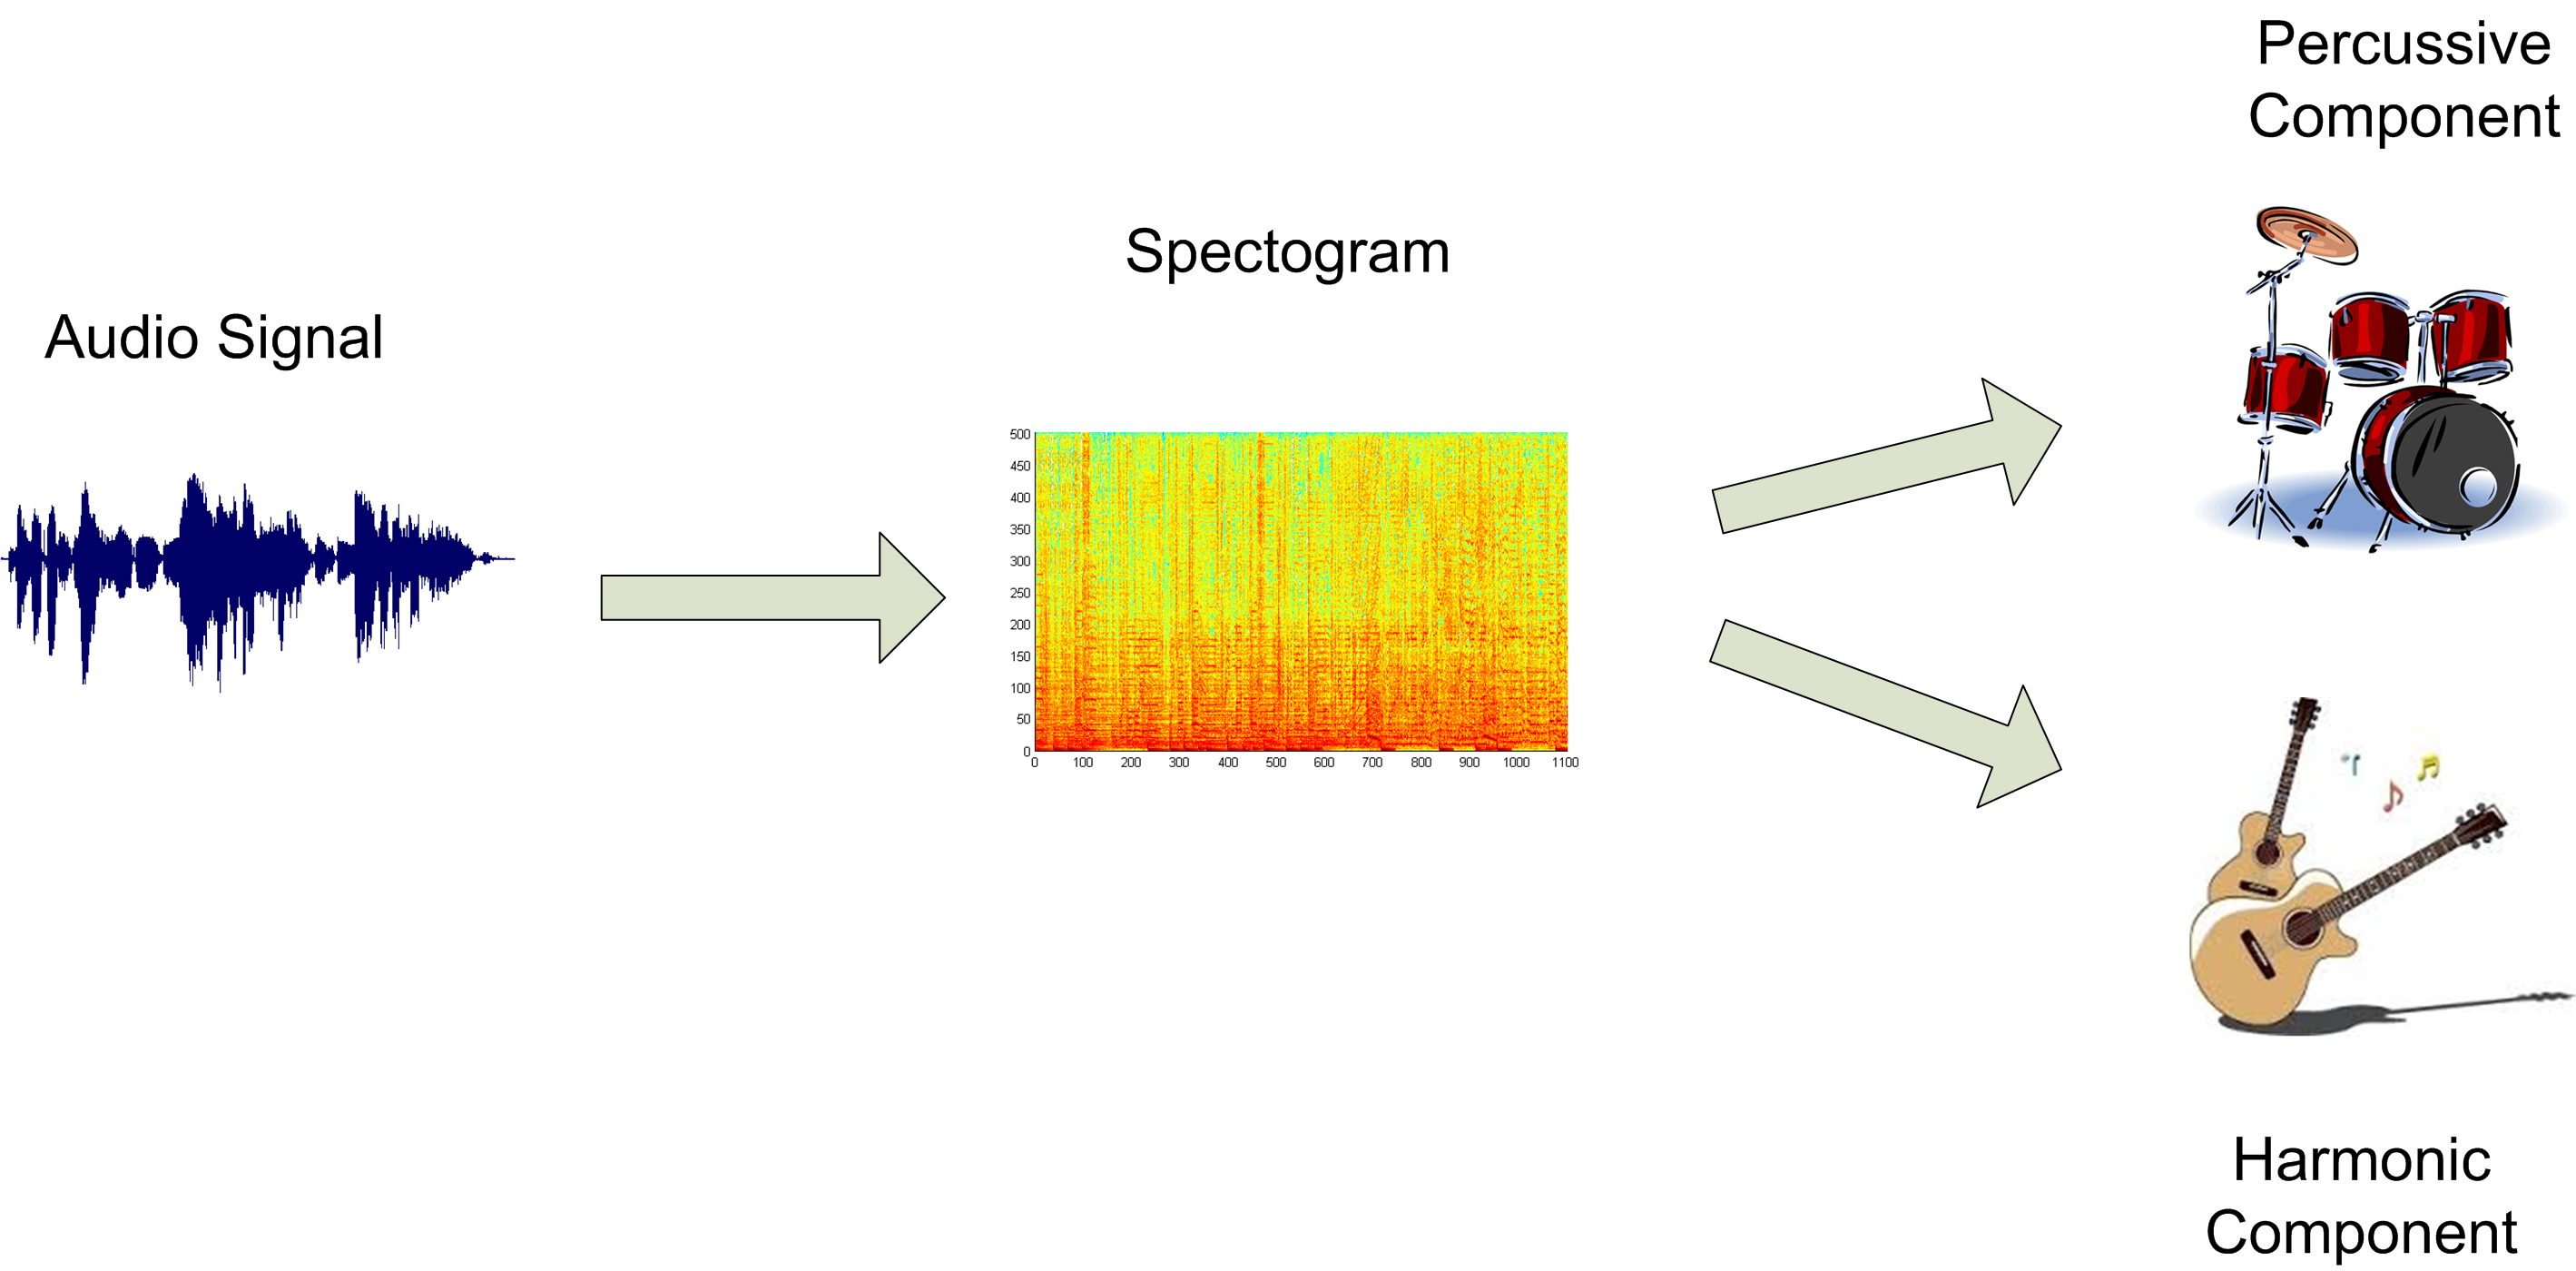 Separation of Percussive & Harmonic Contents of music audio